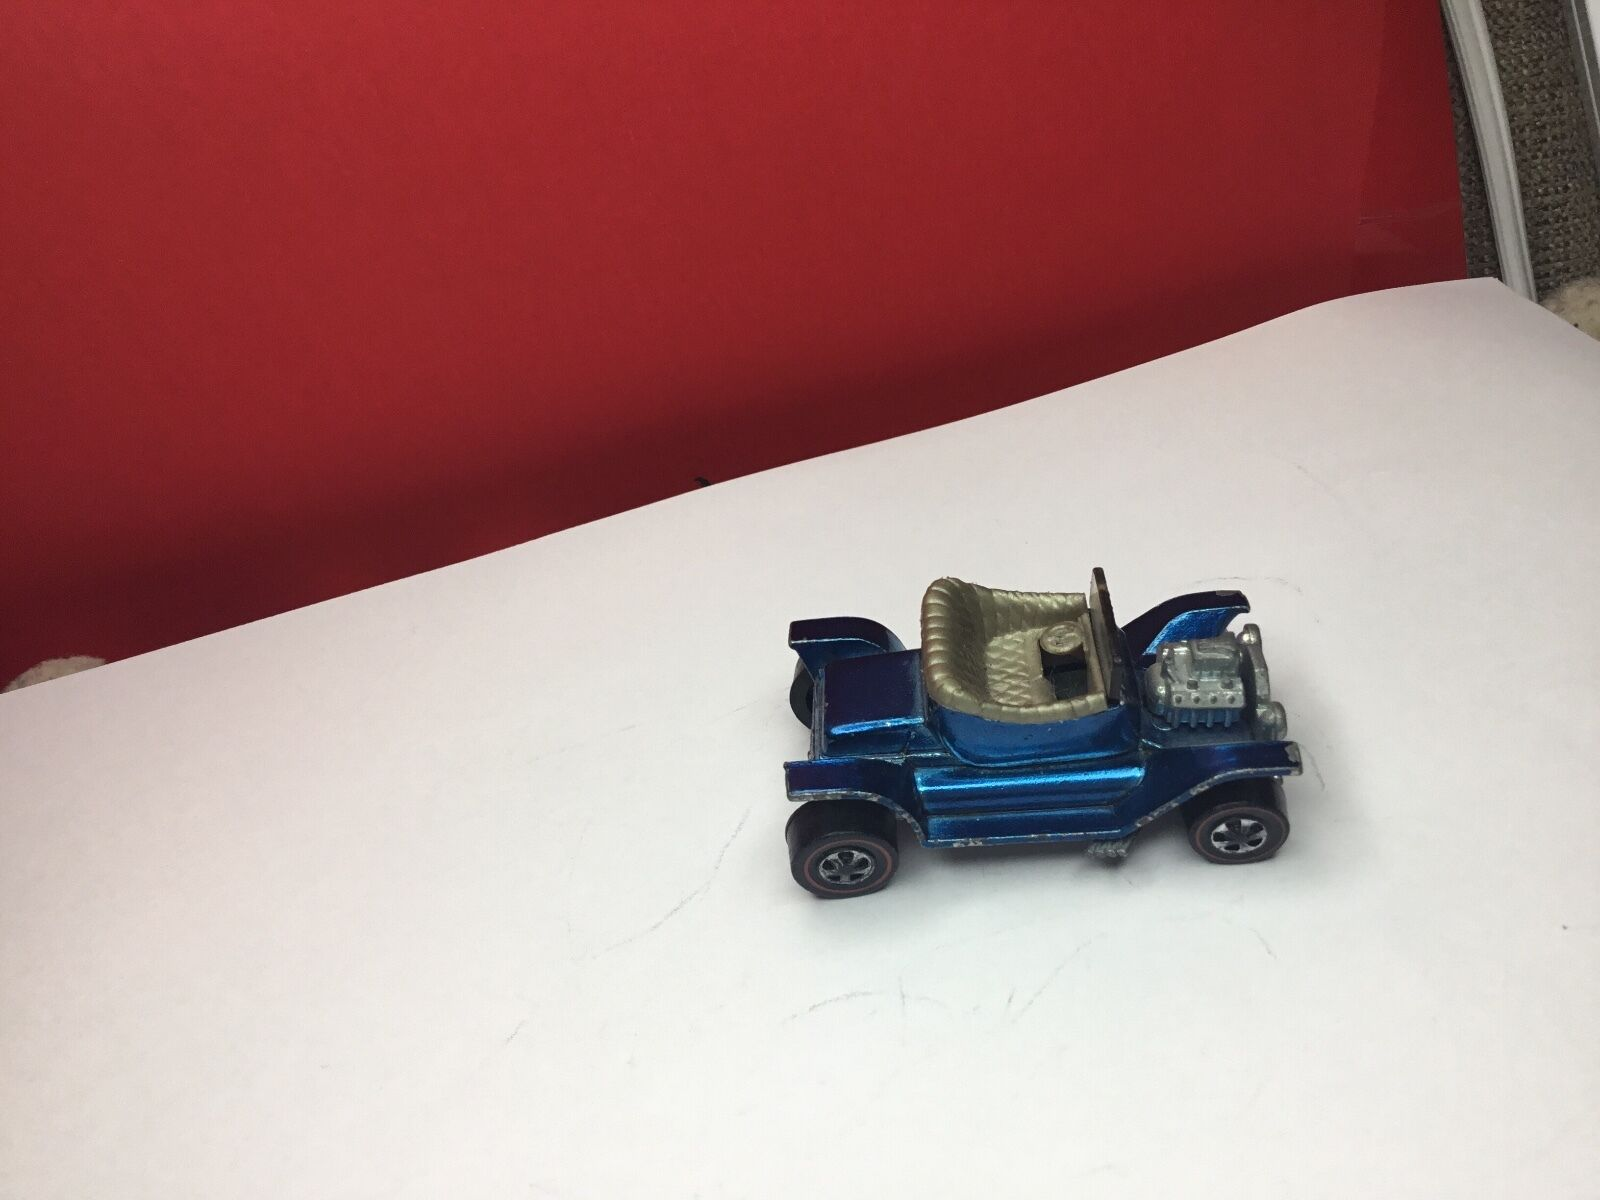 VINTAGE 1968 rotLINE HOTWHEELS Blau HOT HEAP IS IN EXCELLENT CONDITION U.S CAST